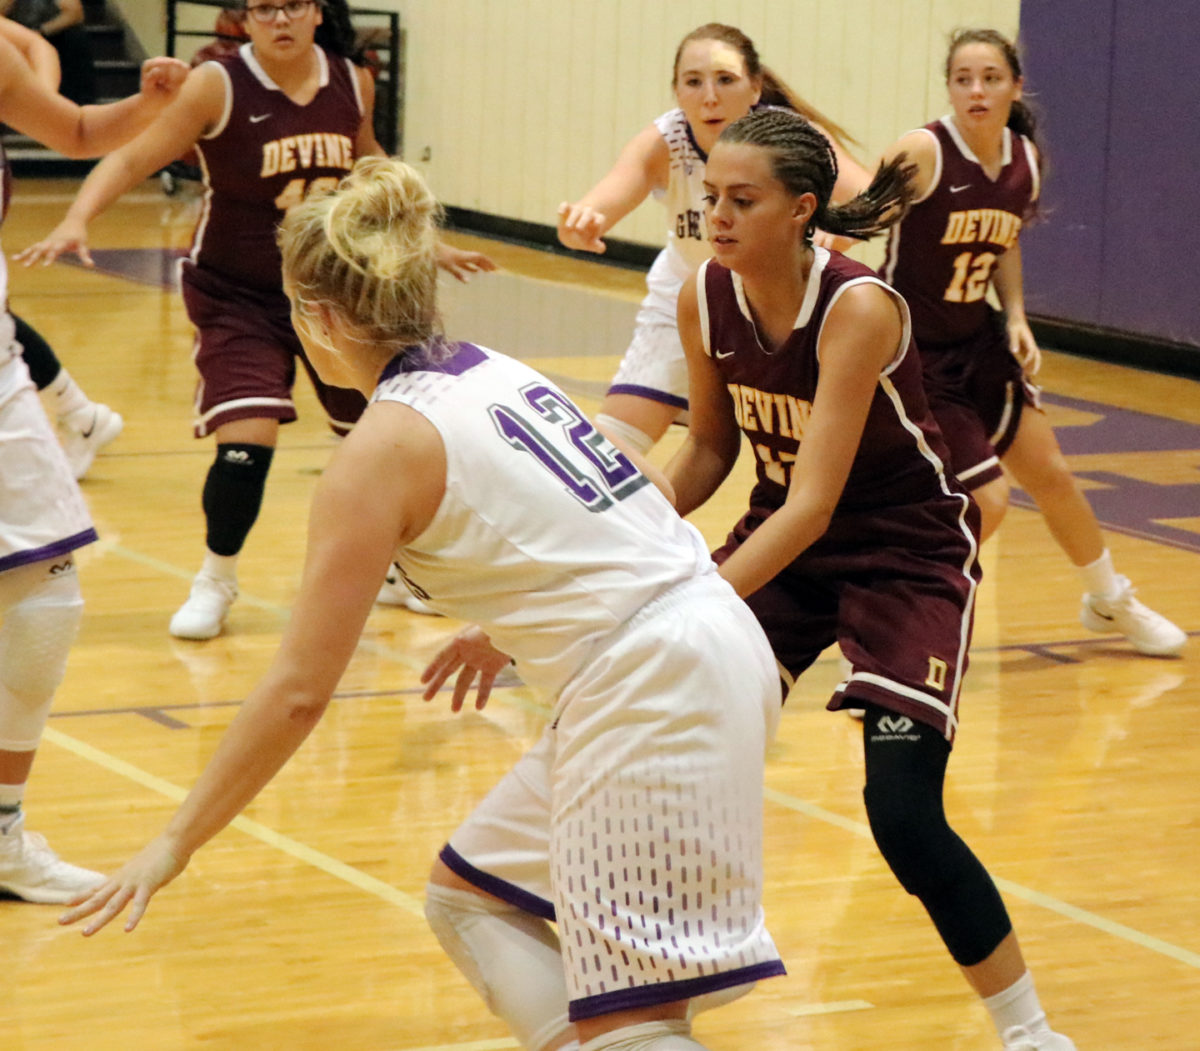 Arabians open season with losses to Boerne, Navarro